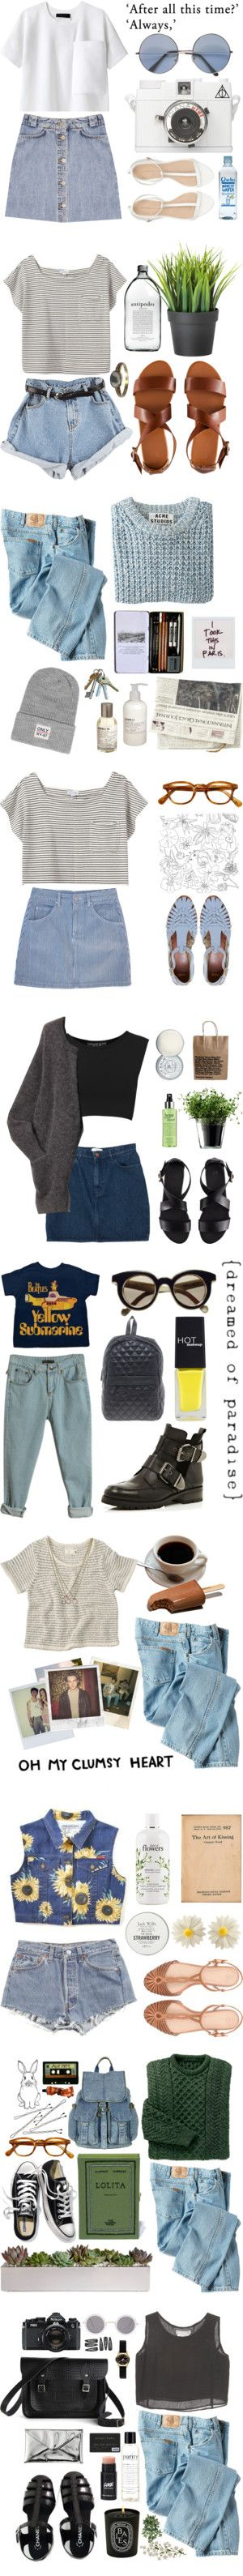 """Blue Jeaned baby, LA Lady"" by natalieoffduty ❤ liked on Polyvore"